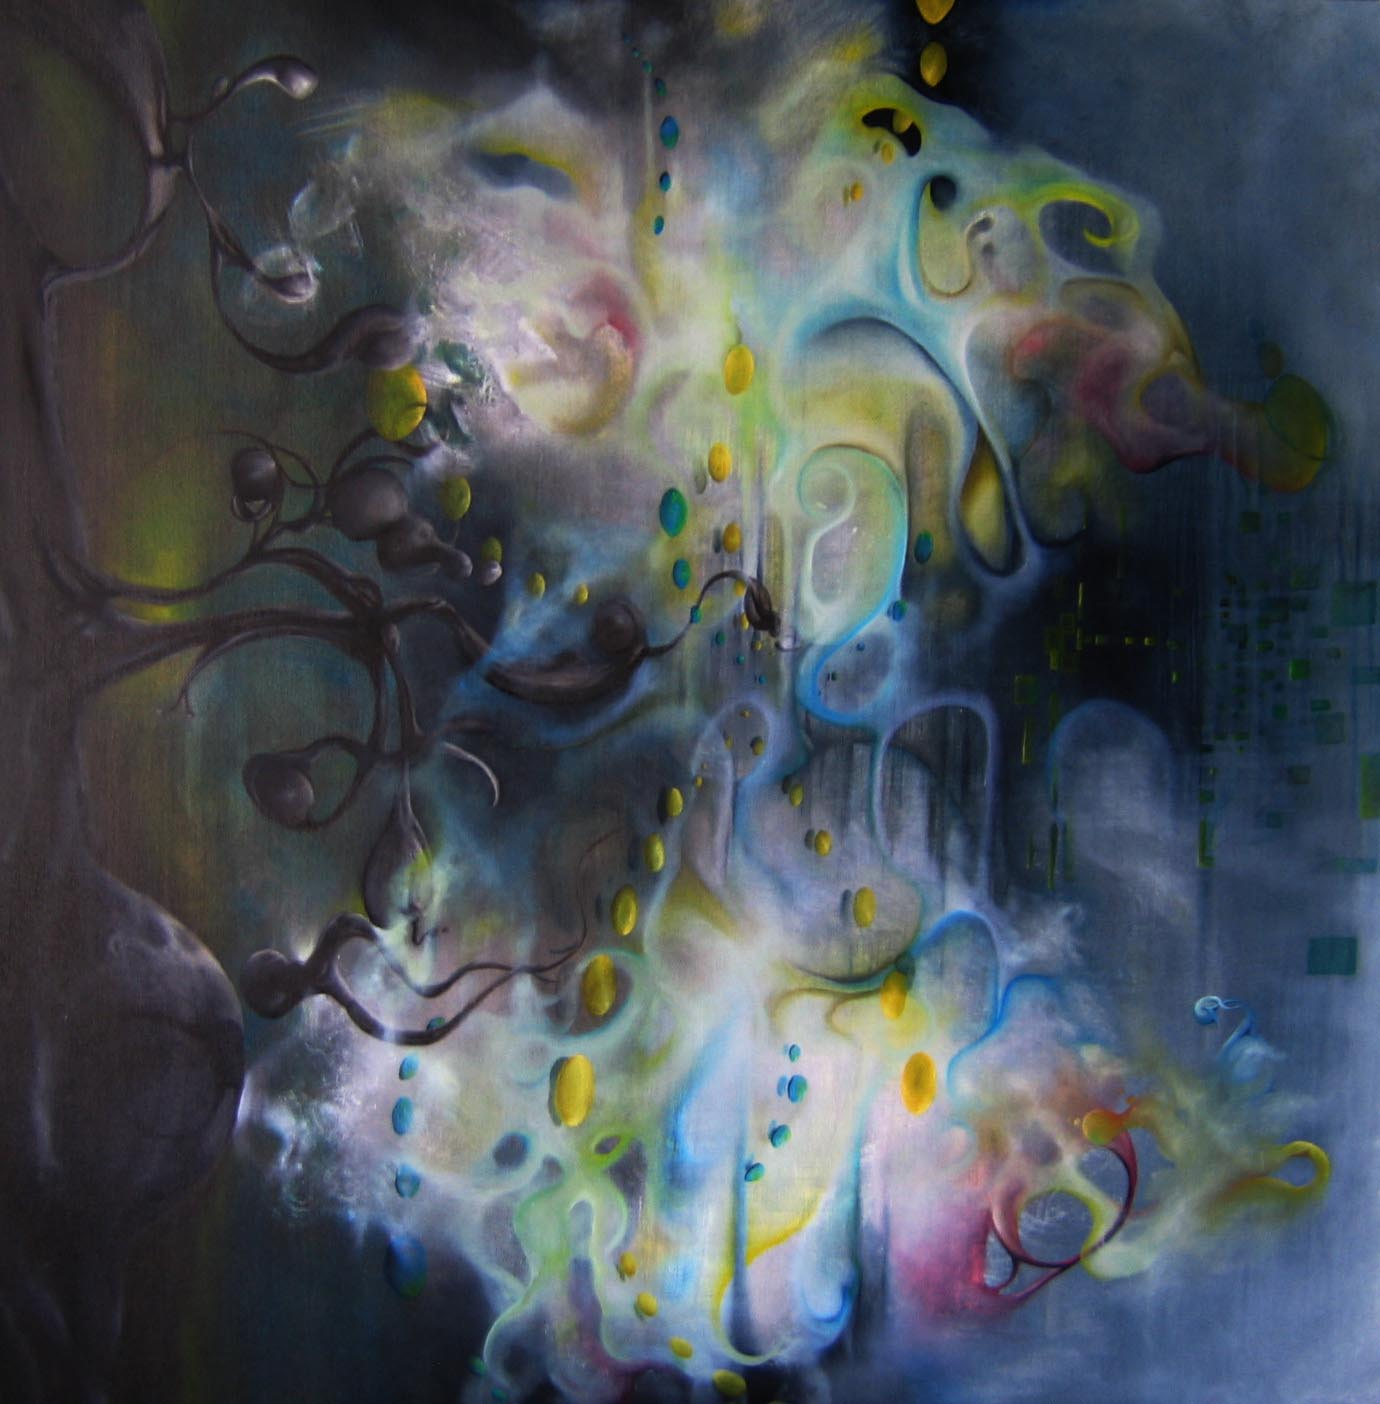 sound-to-colors synesthesia Paintings Of Sounds And Music made By The Synesthetic Artist Timothy Layden